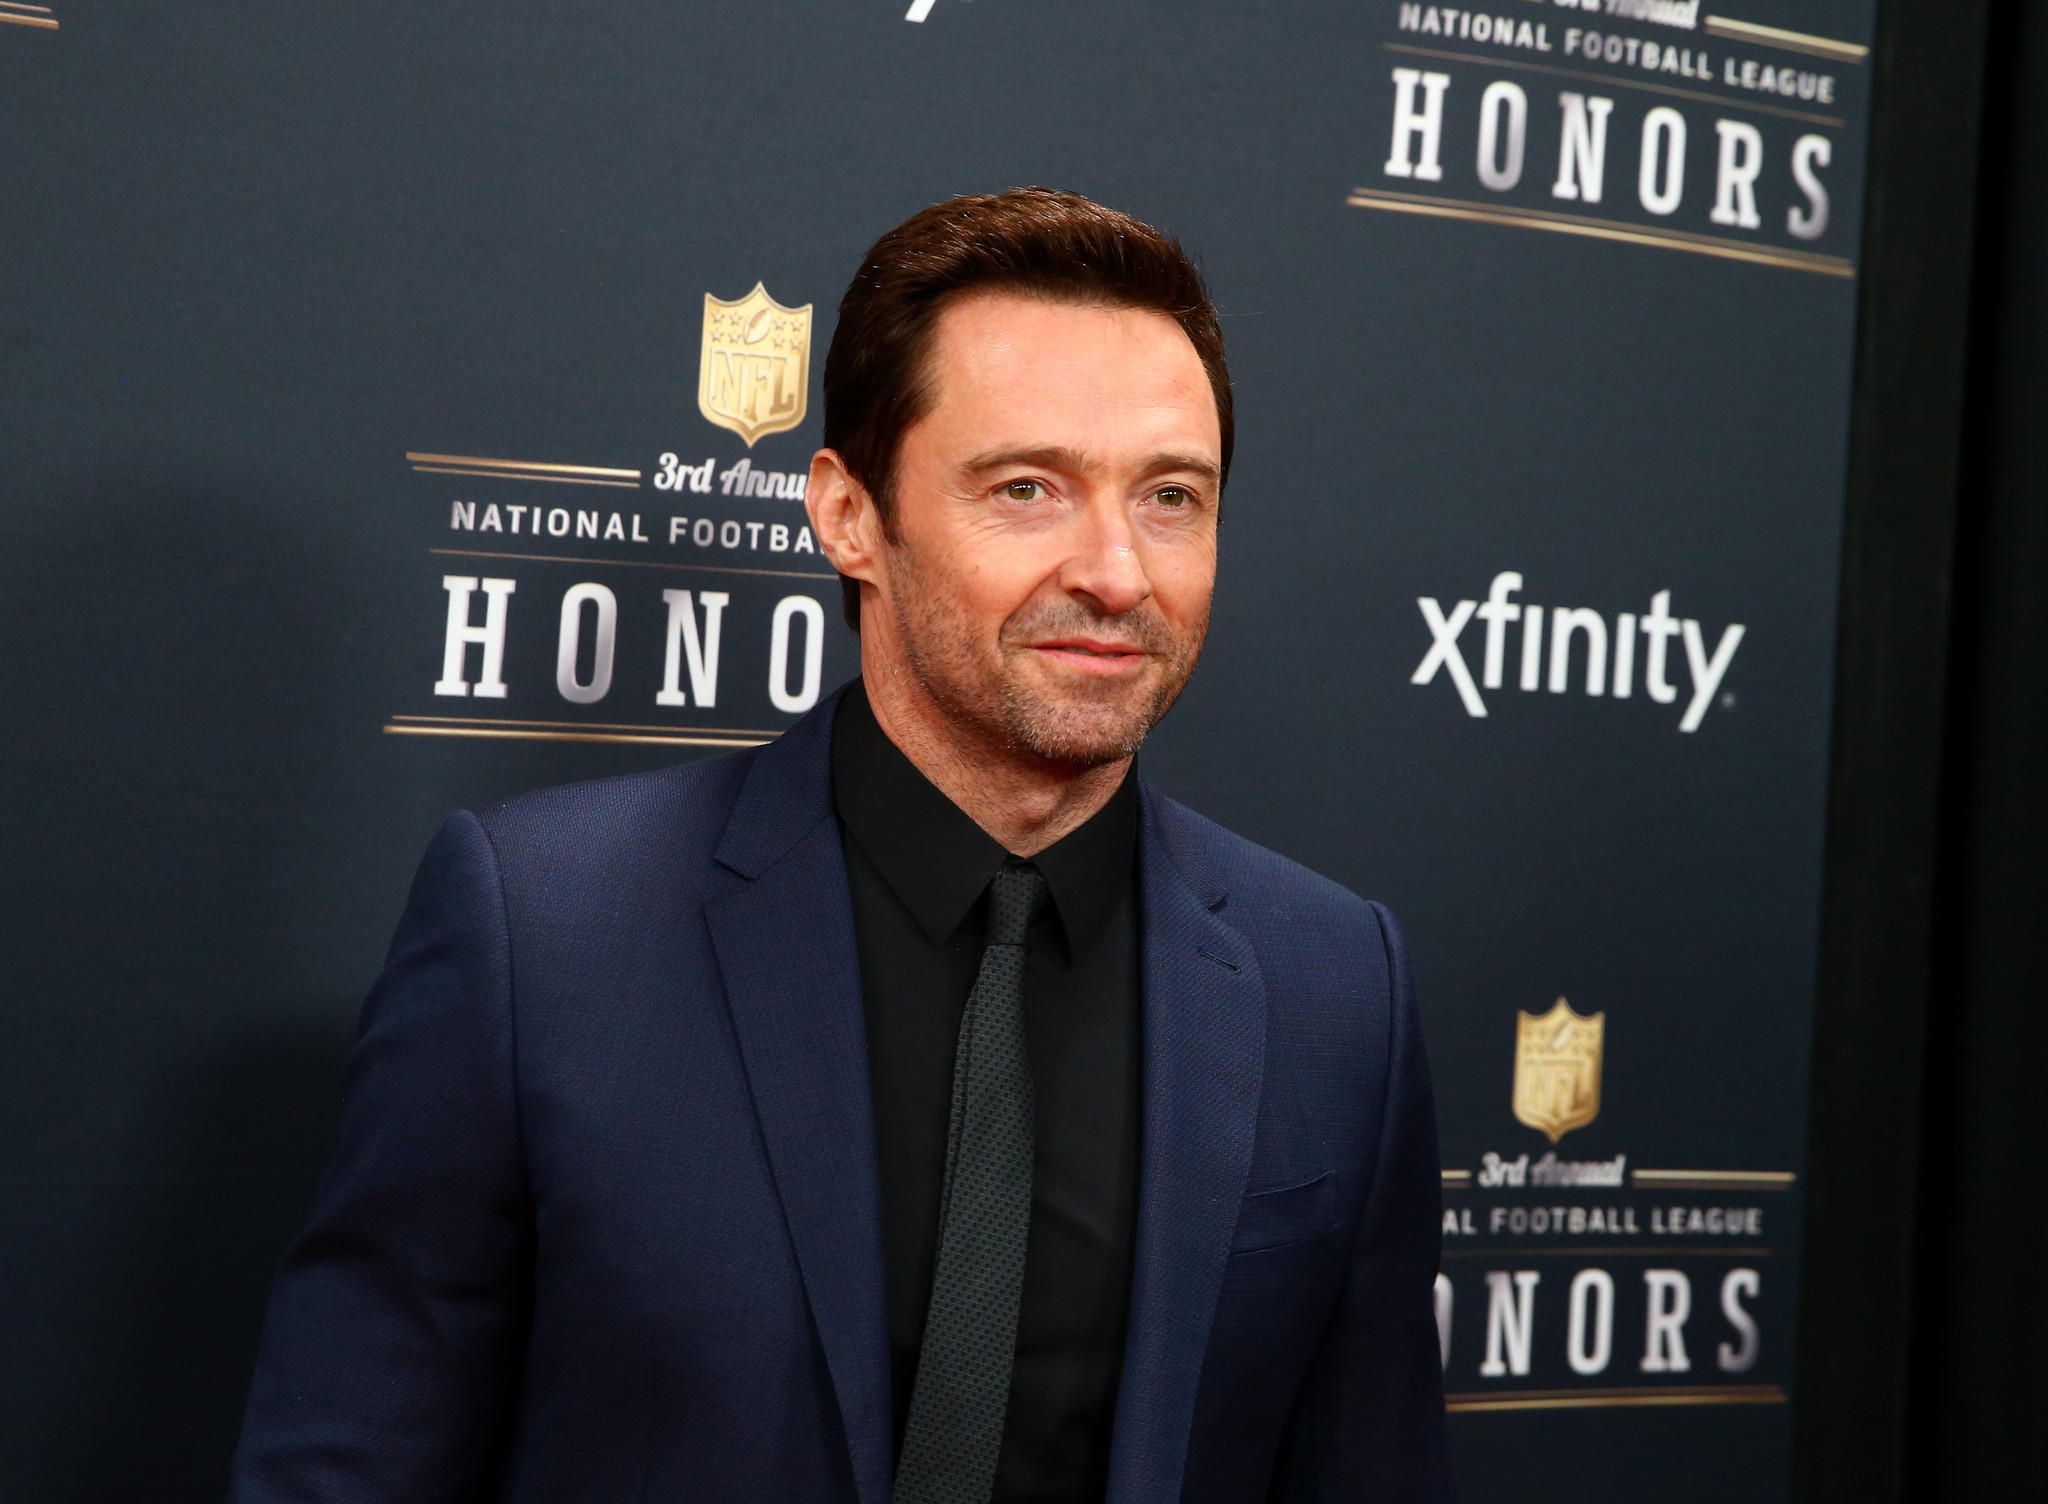 Hugh Jackman walks the red carpet prior to the NFL Honors at Radio City Music Hall.